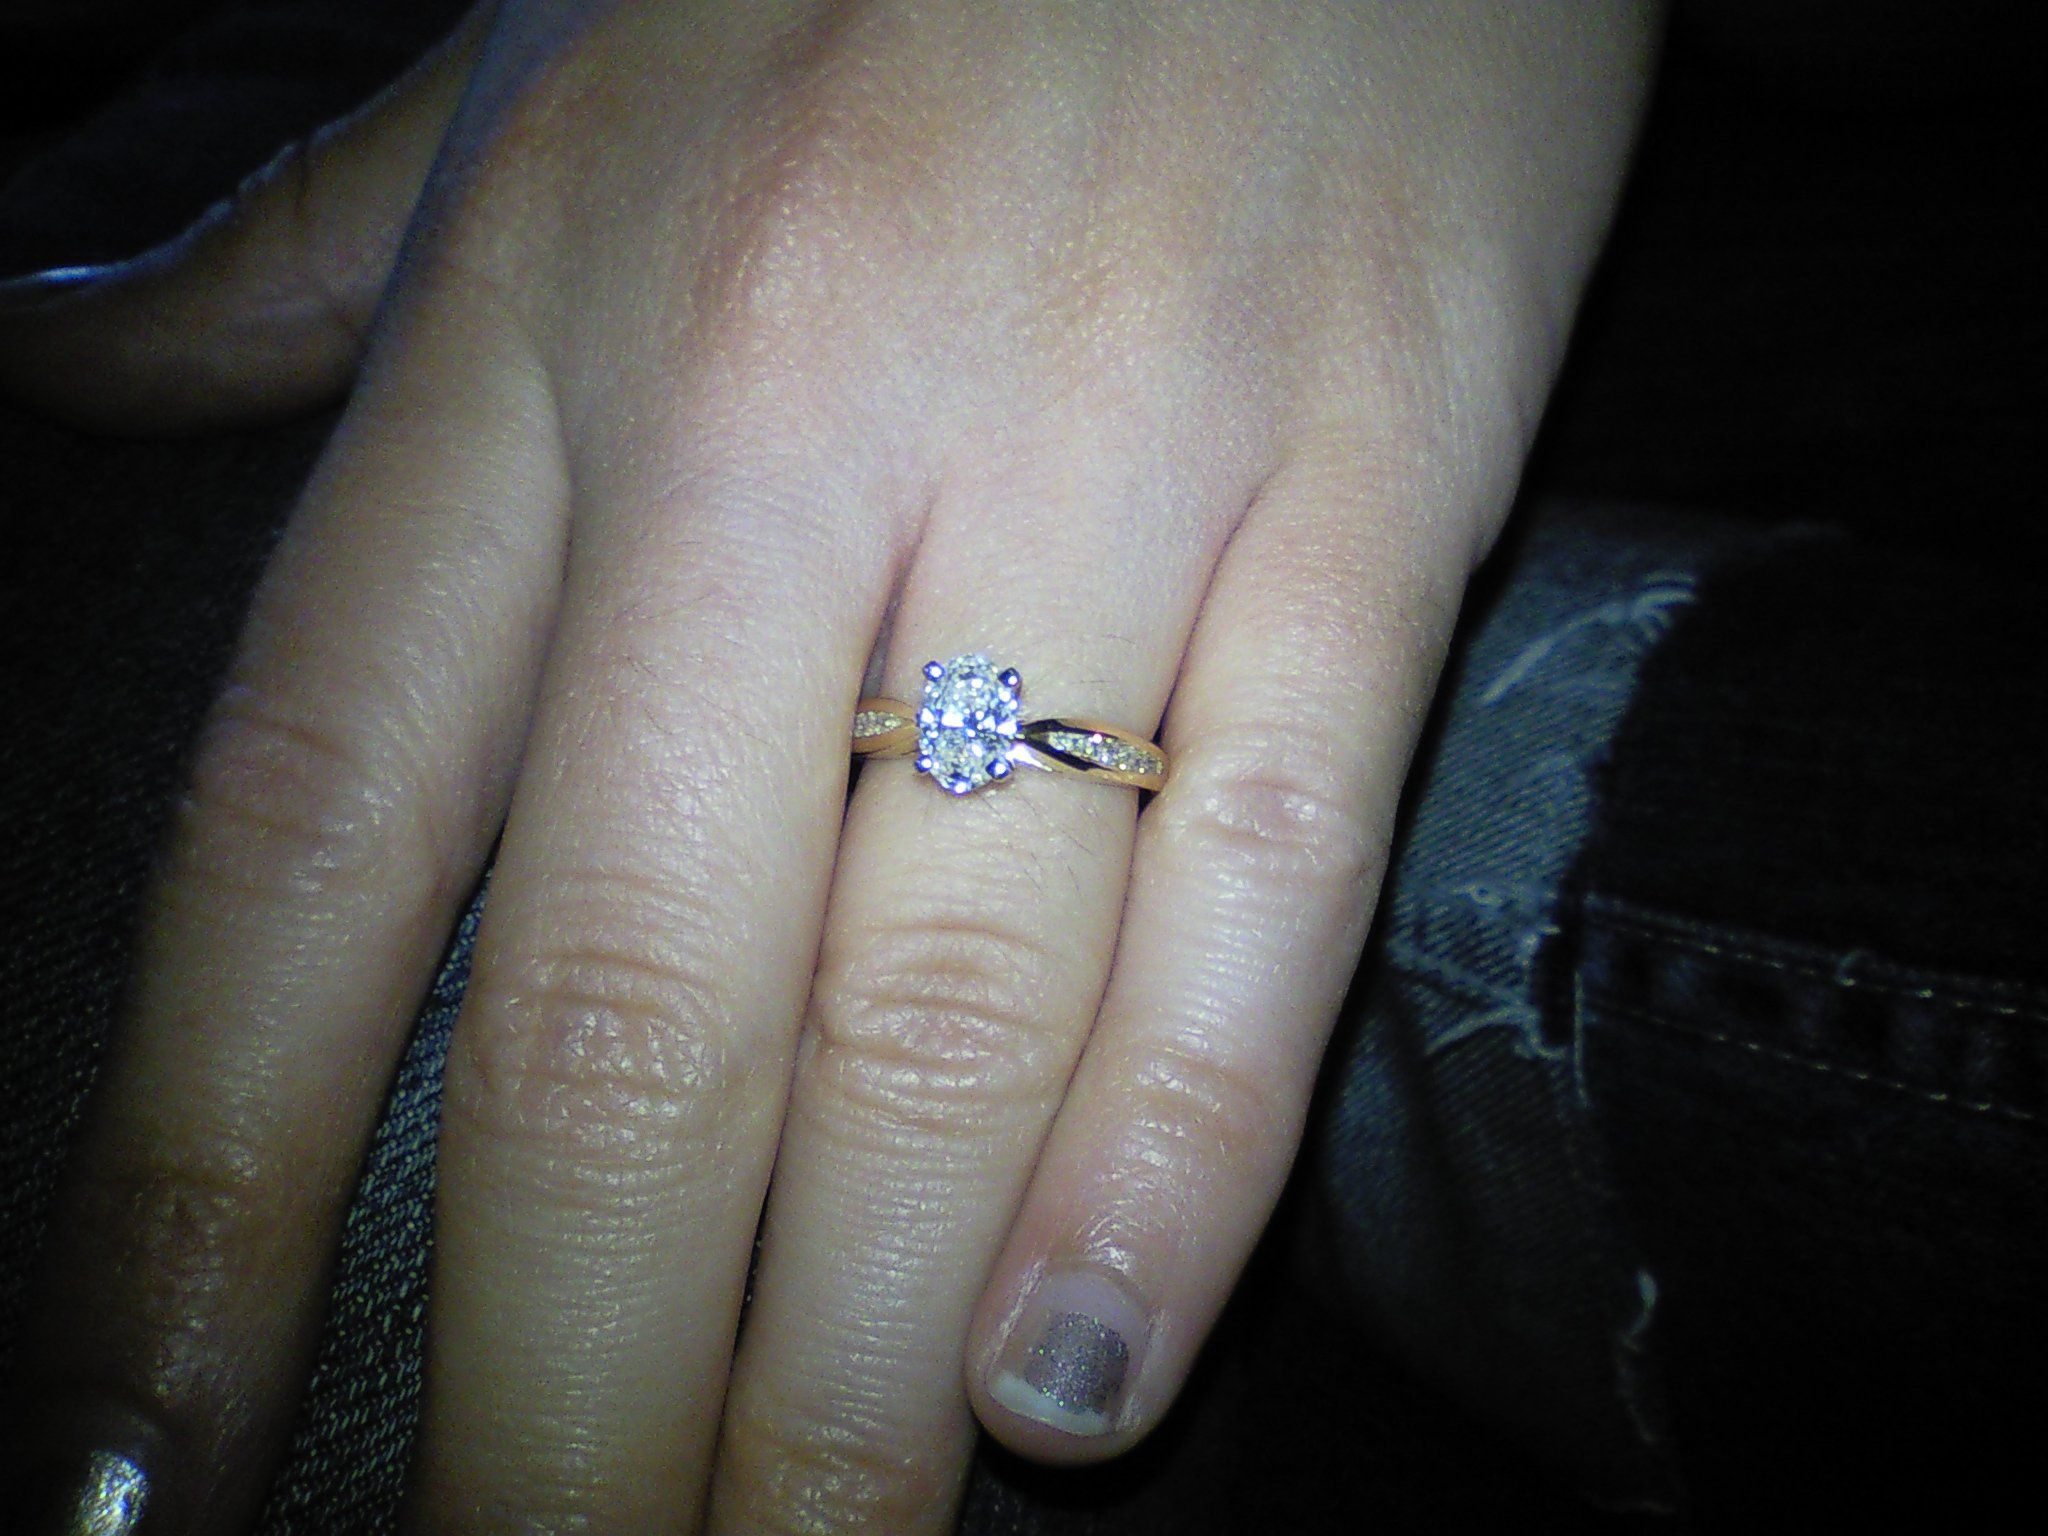 Website where I picked out my top 3 favorite engagement ring designs then pleasantly surprised which one he had customized for me.  <3  [sorry for the poor nail job]  http://www.engagementglobal.com/